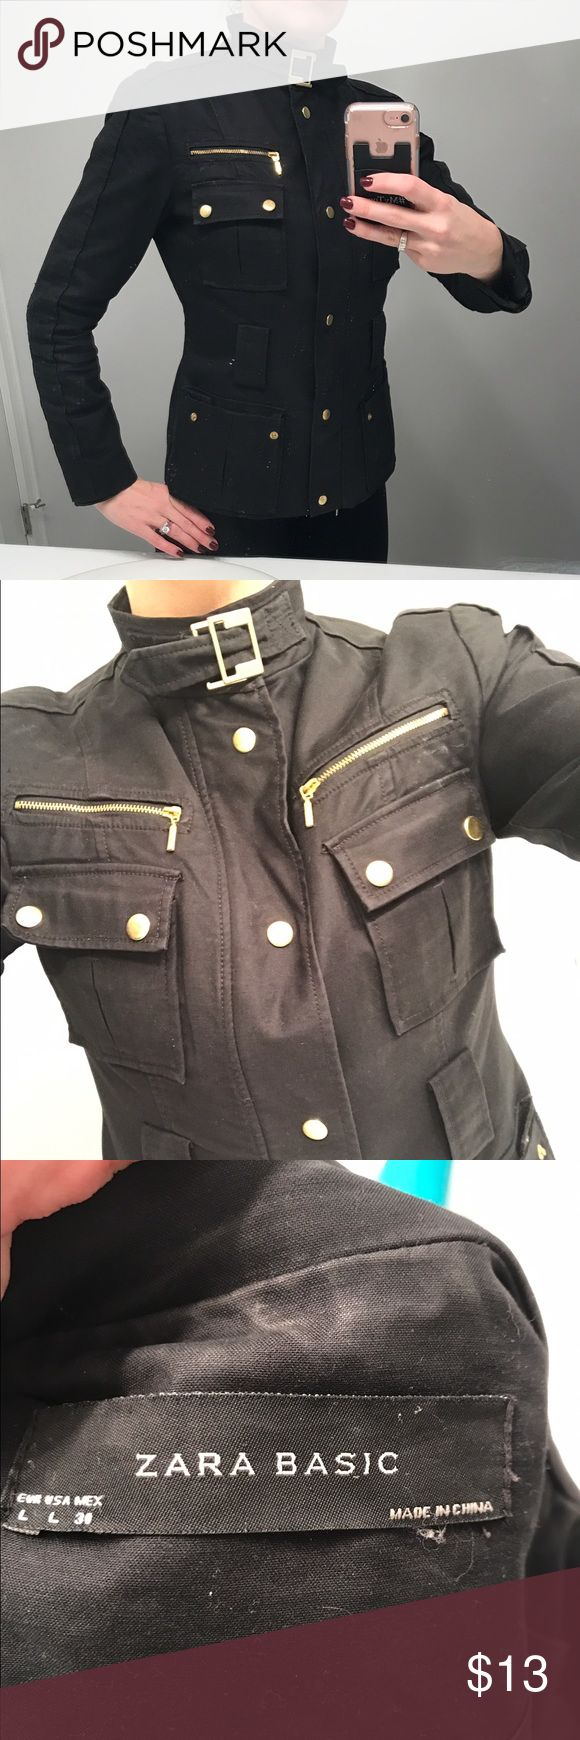 Black Zara jacket Really cute black Zara jacket with tons of gold zippers and closure at neck , had a belt it's missing and zipper doesn't work but it buttons up and still looks stunning lots of life says large but runs small more like medium Zara Jackets & Coats Utility Jackets